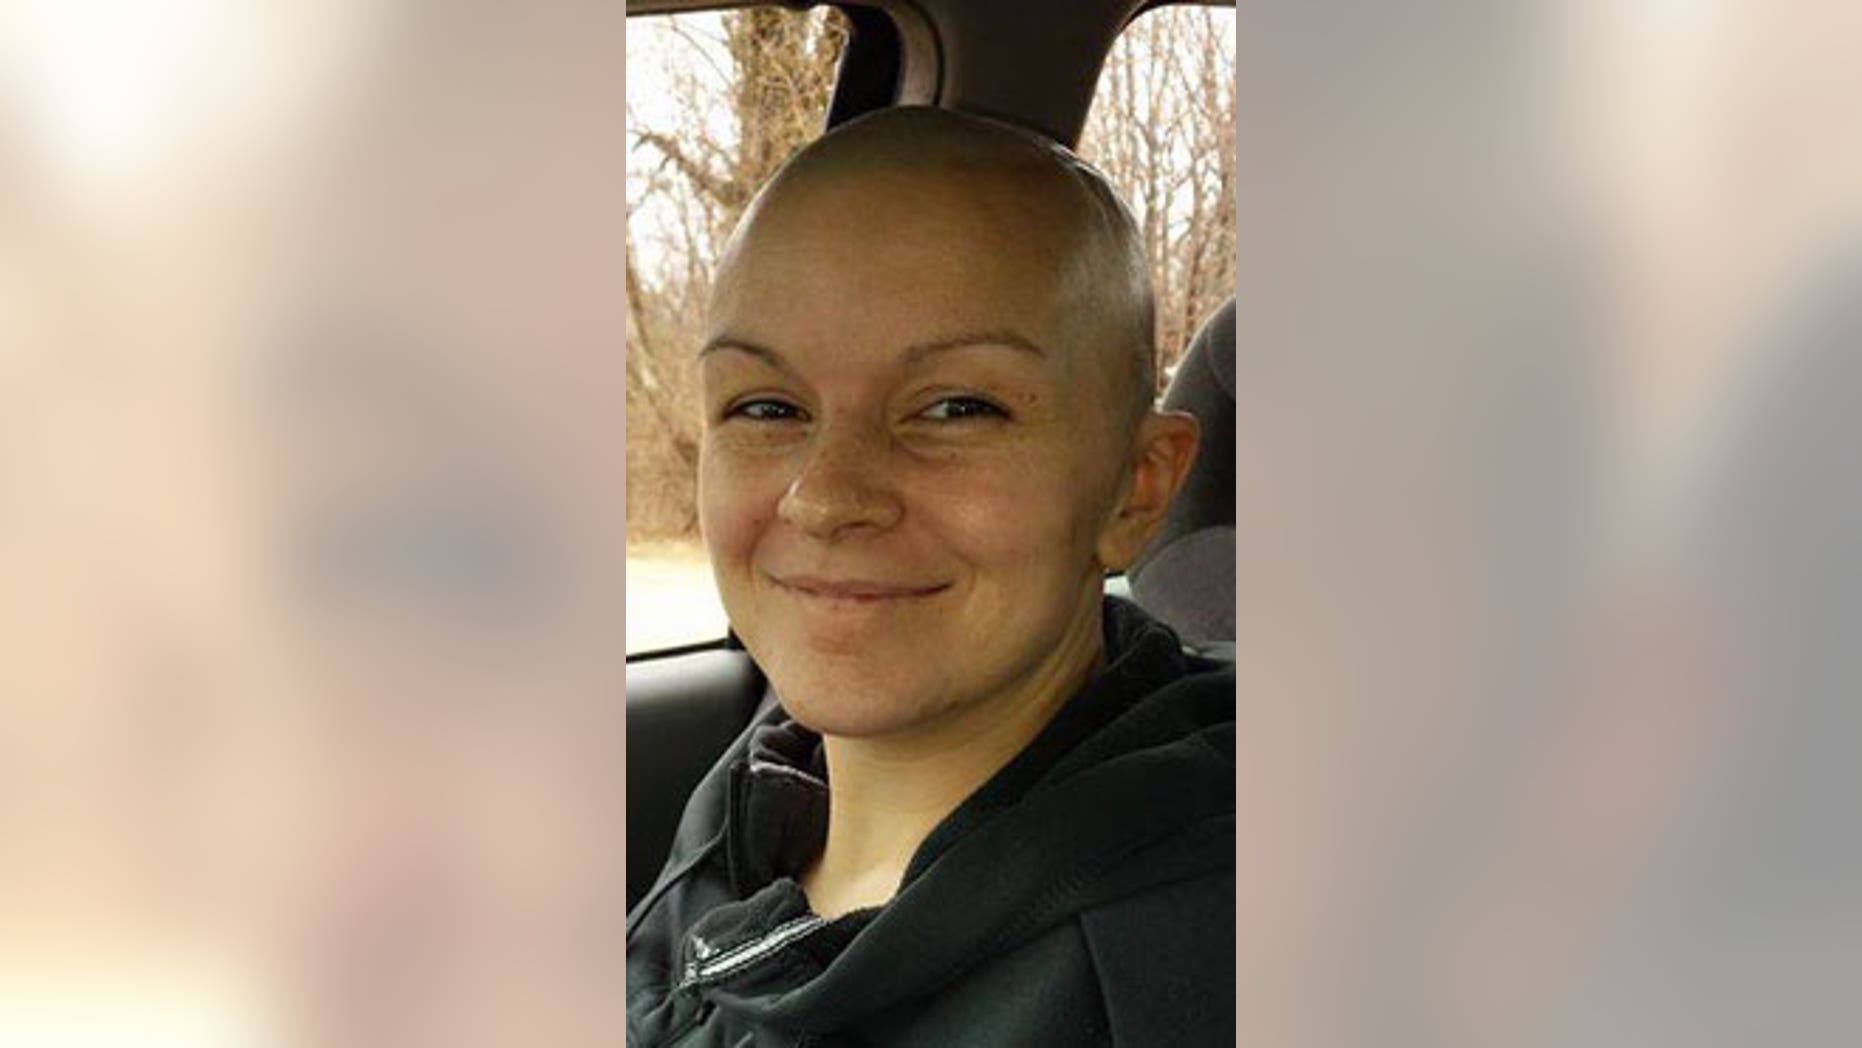 Elizabeth Marek, of Illinois, was diagnosed with gliobastoma (GBM), an aggressive form of brain cancer, 24 weeks into her second pregnancy.